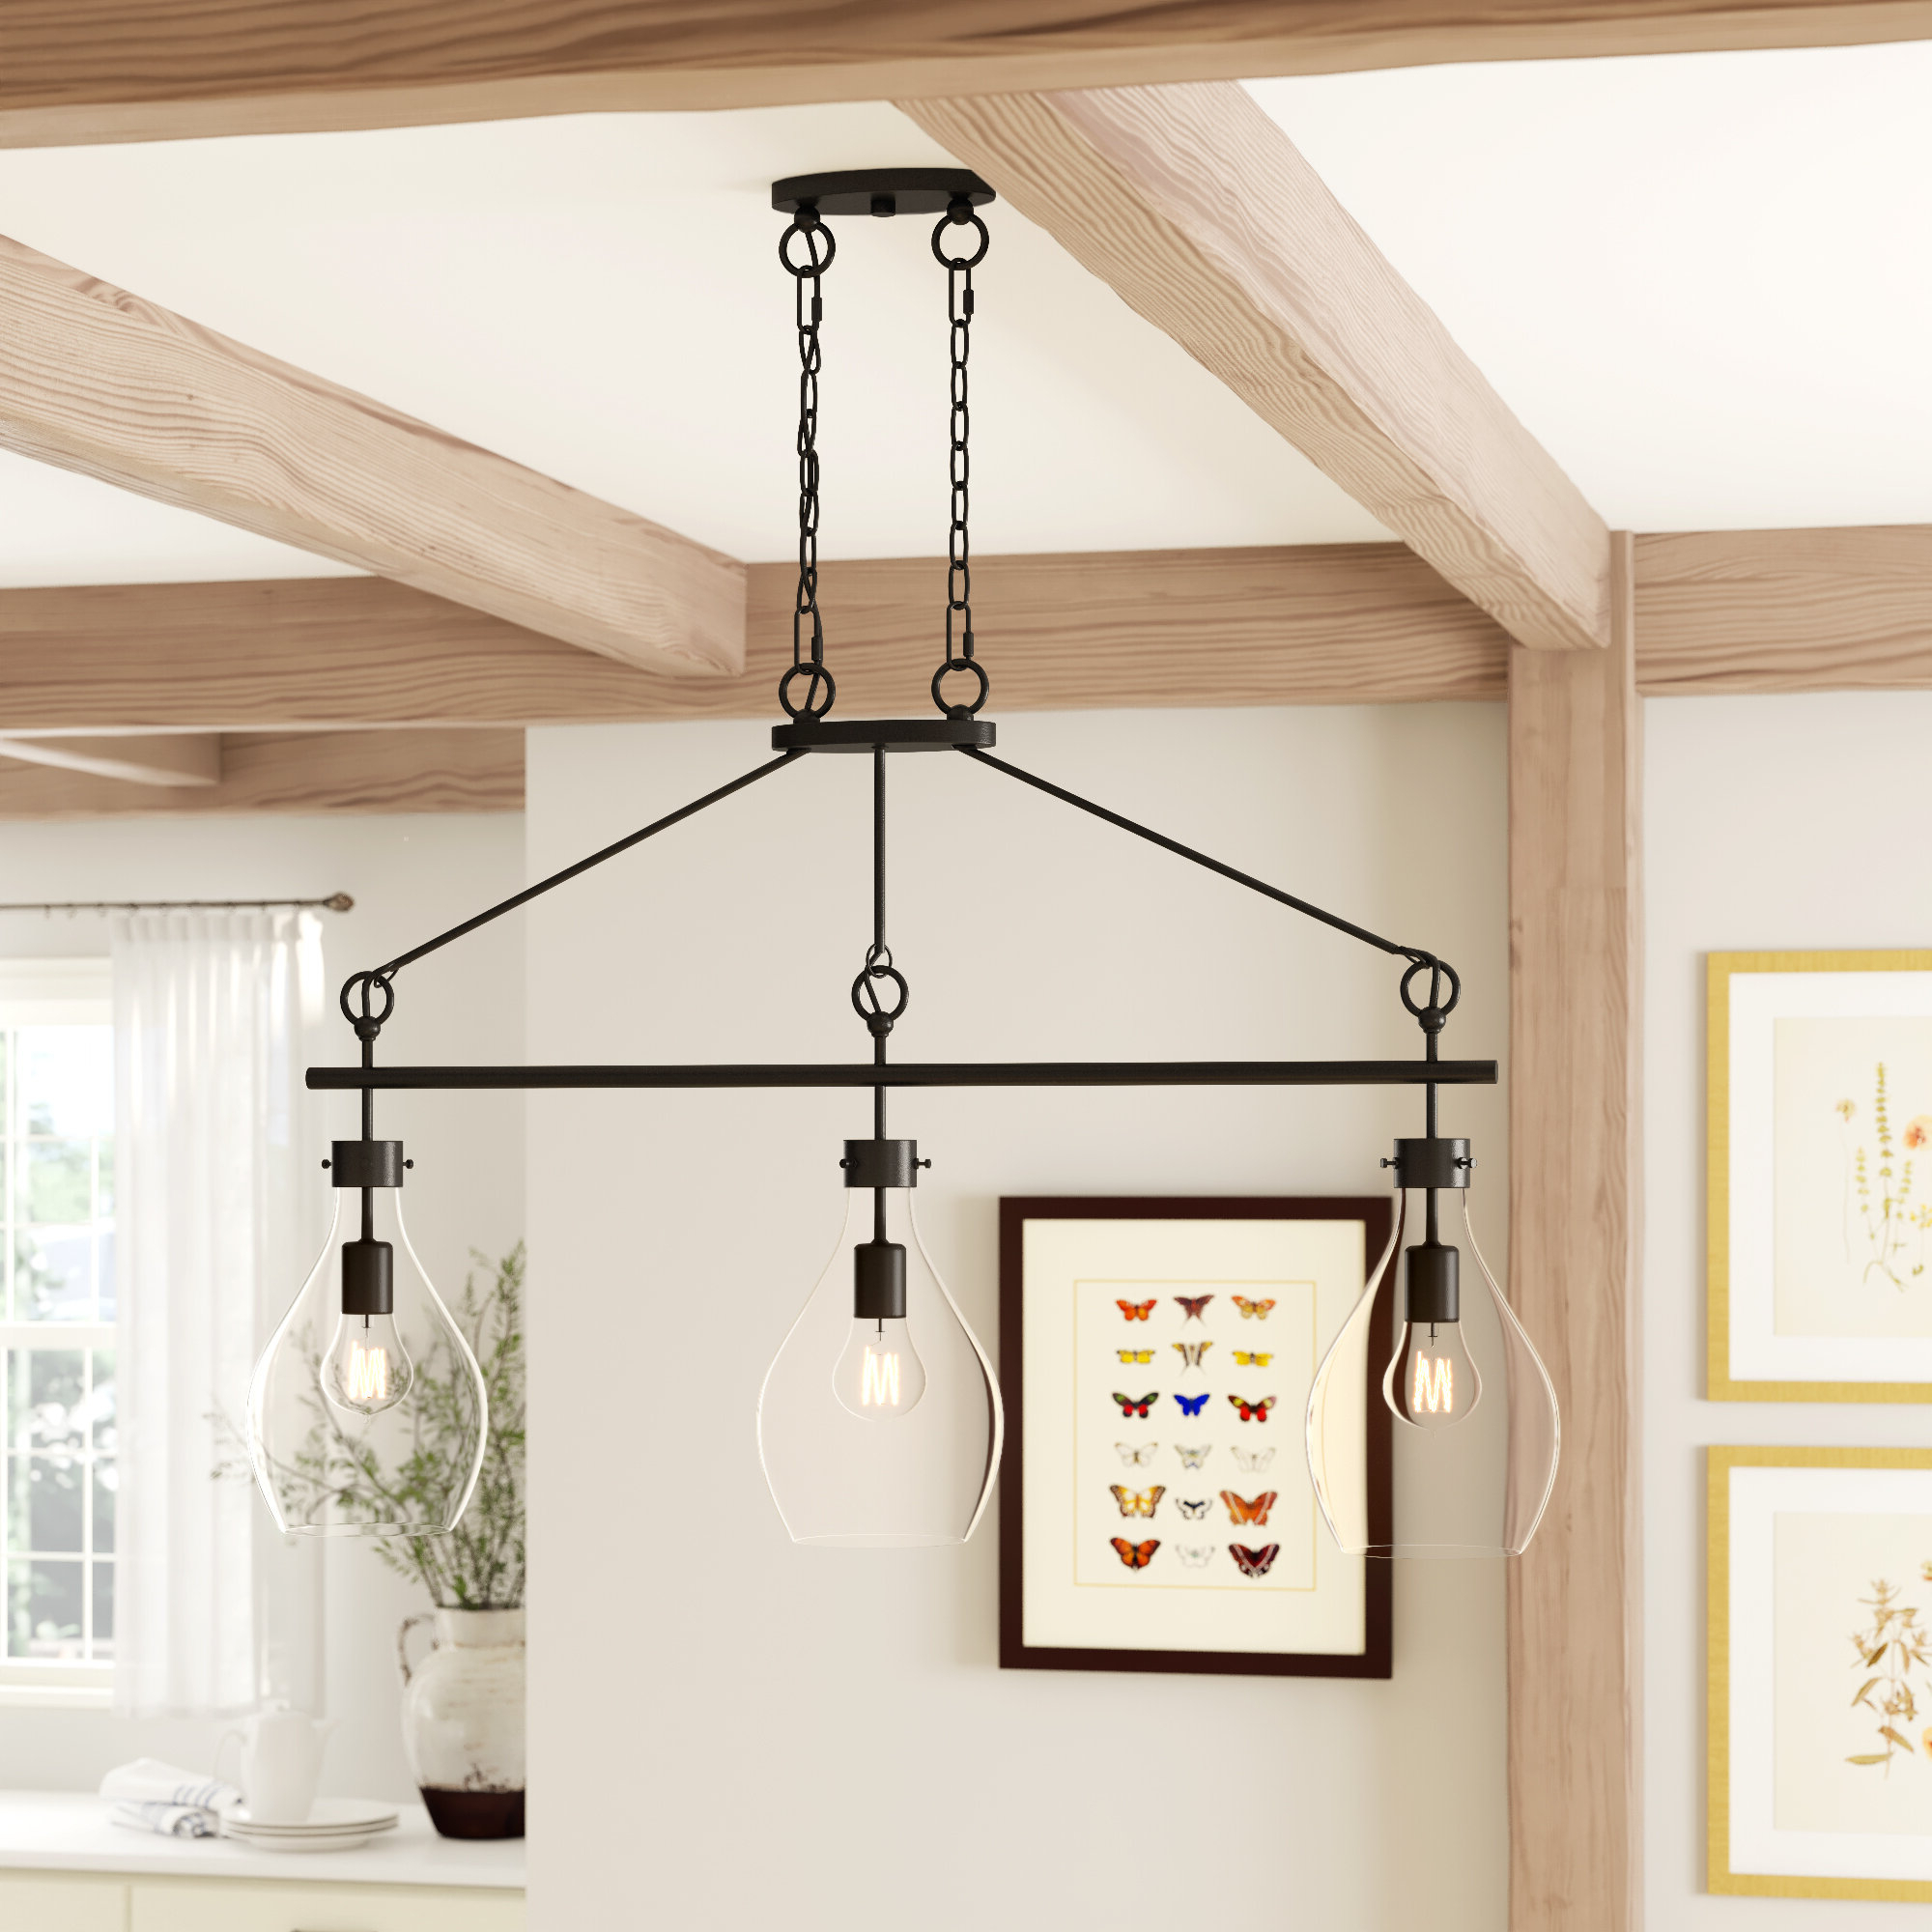 Famous Ariel 2 Light Kitchen Island Dome Pendants Inside Nan 3 Light Kitchen Island Teardrop Pendant (View 11 of 25)